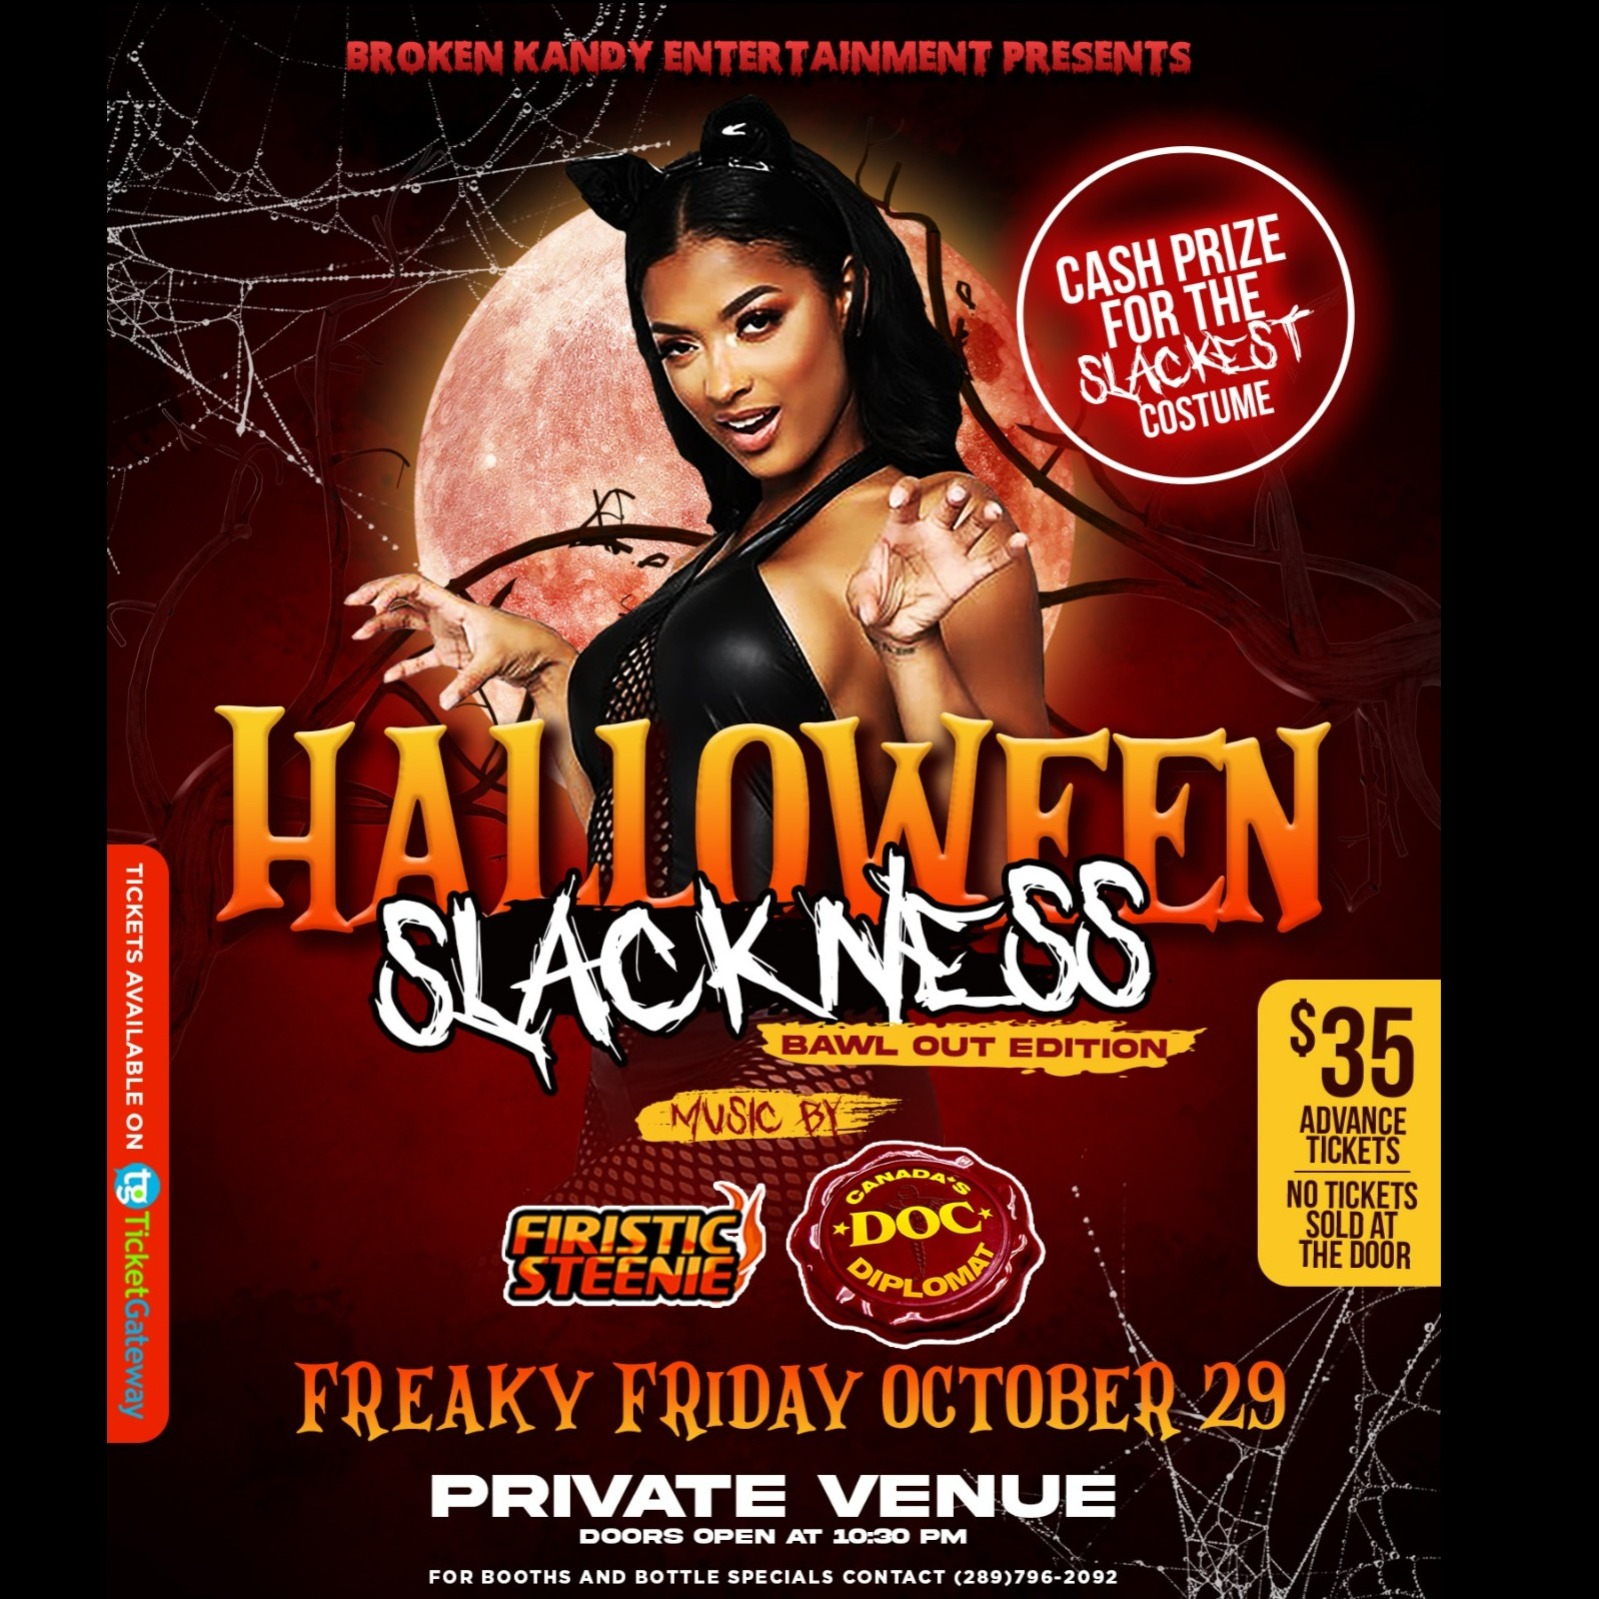 HALLOWEEN SLACKNESS- BAWL OUT EDITION